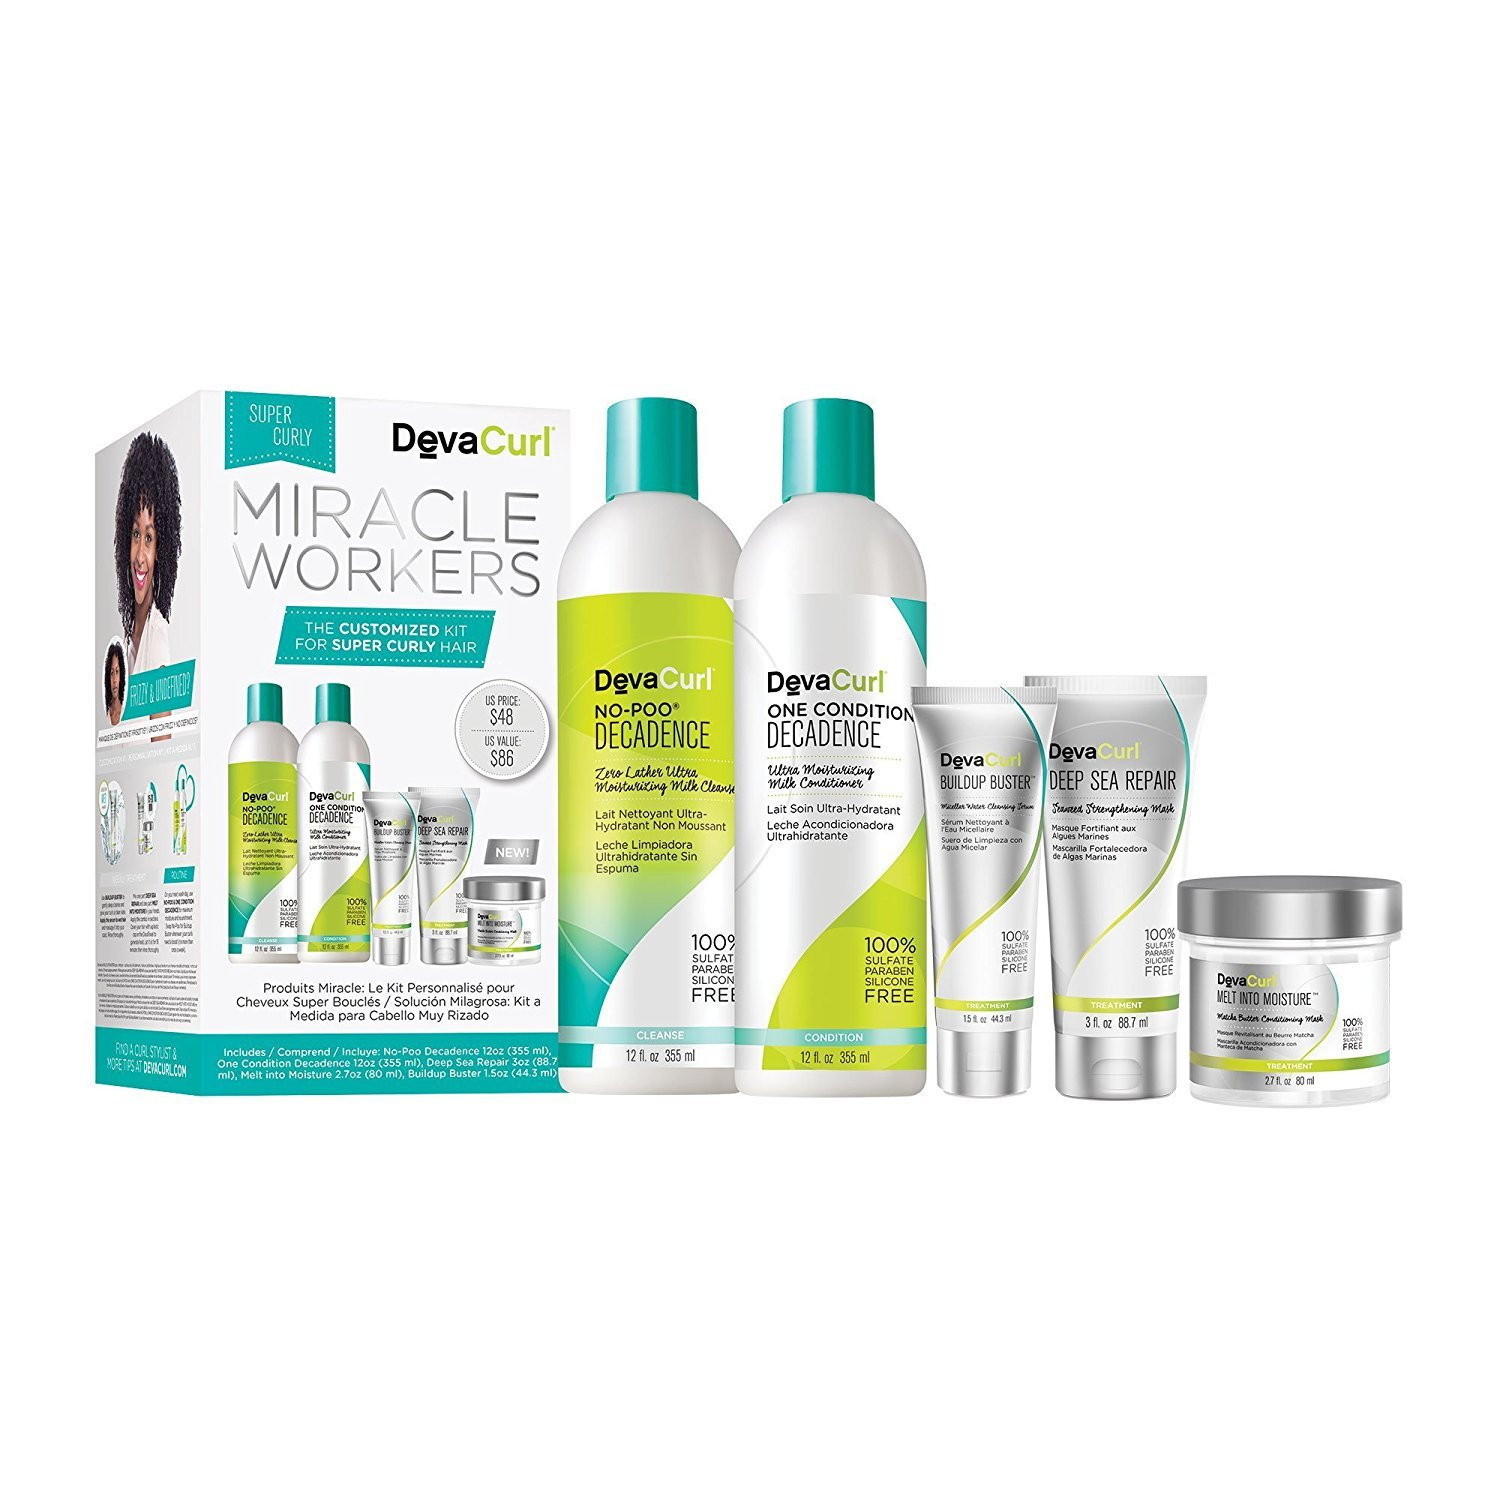 DevaCurl Miracle Workers: A Customized Kit for Super Curly Hair